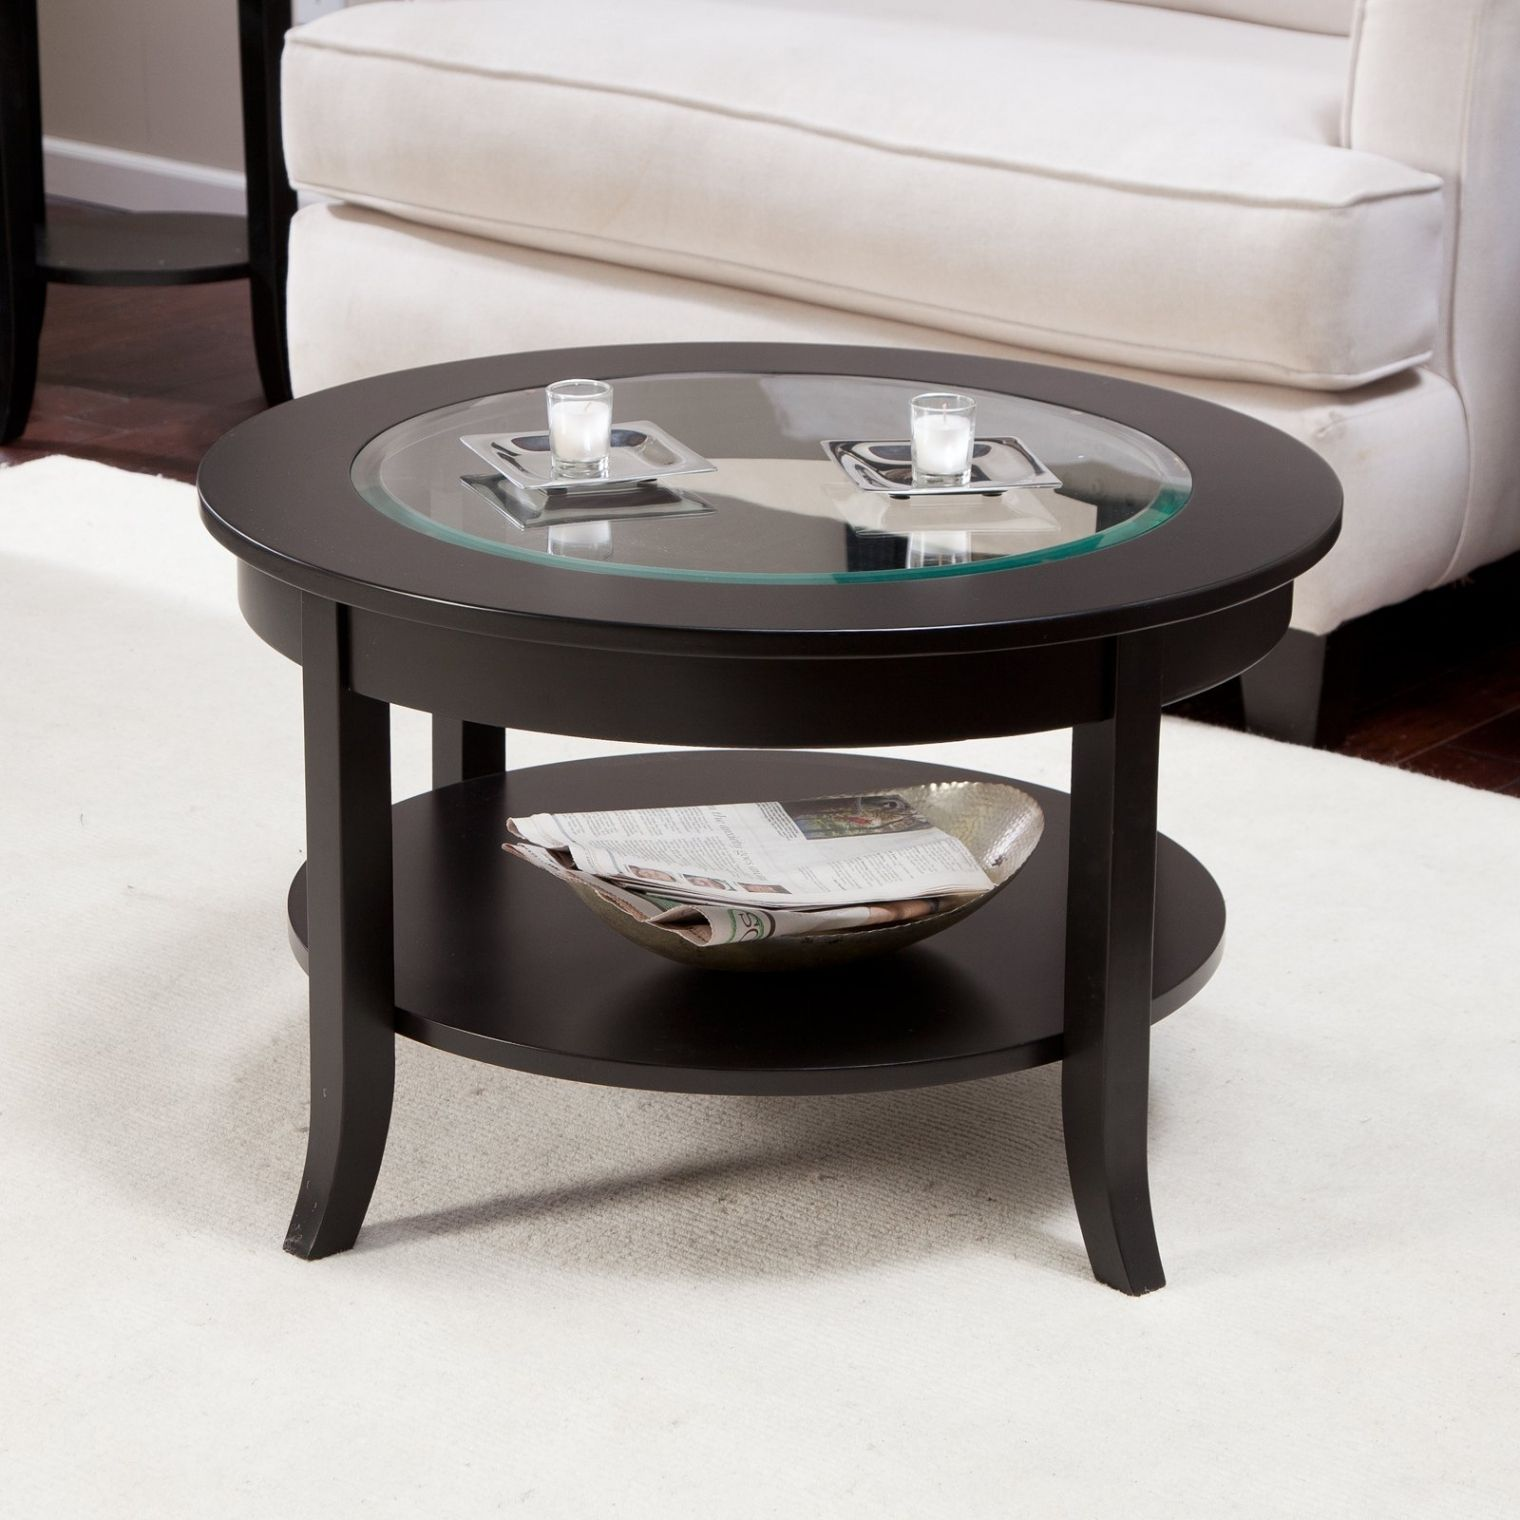 40 Best Collection Of Round Rattan Coffee Table With Glass Top Wayfair Coffee Table Living Room Table Sets Round Wood Coffee Table [ 1520 x 1520 Pixel ]